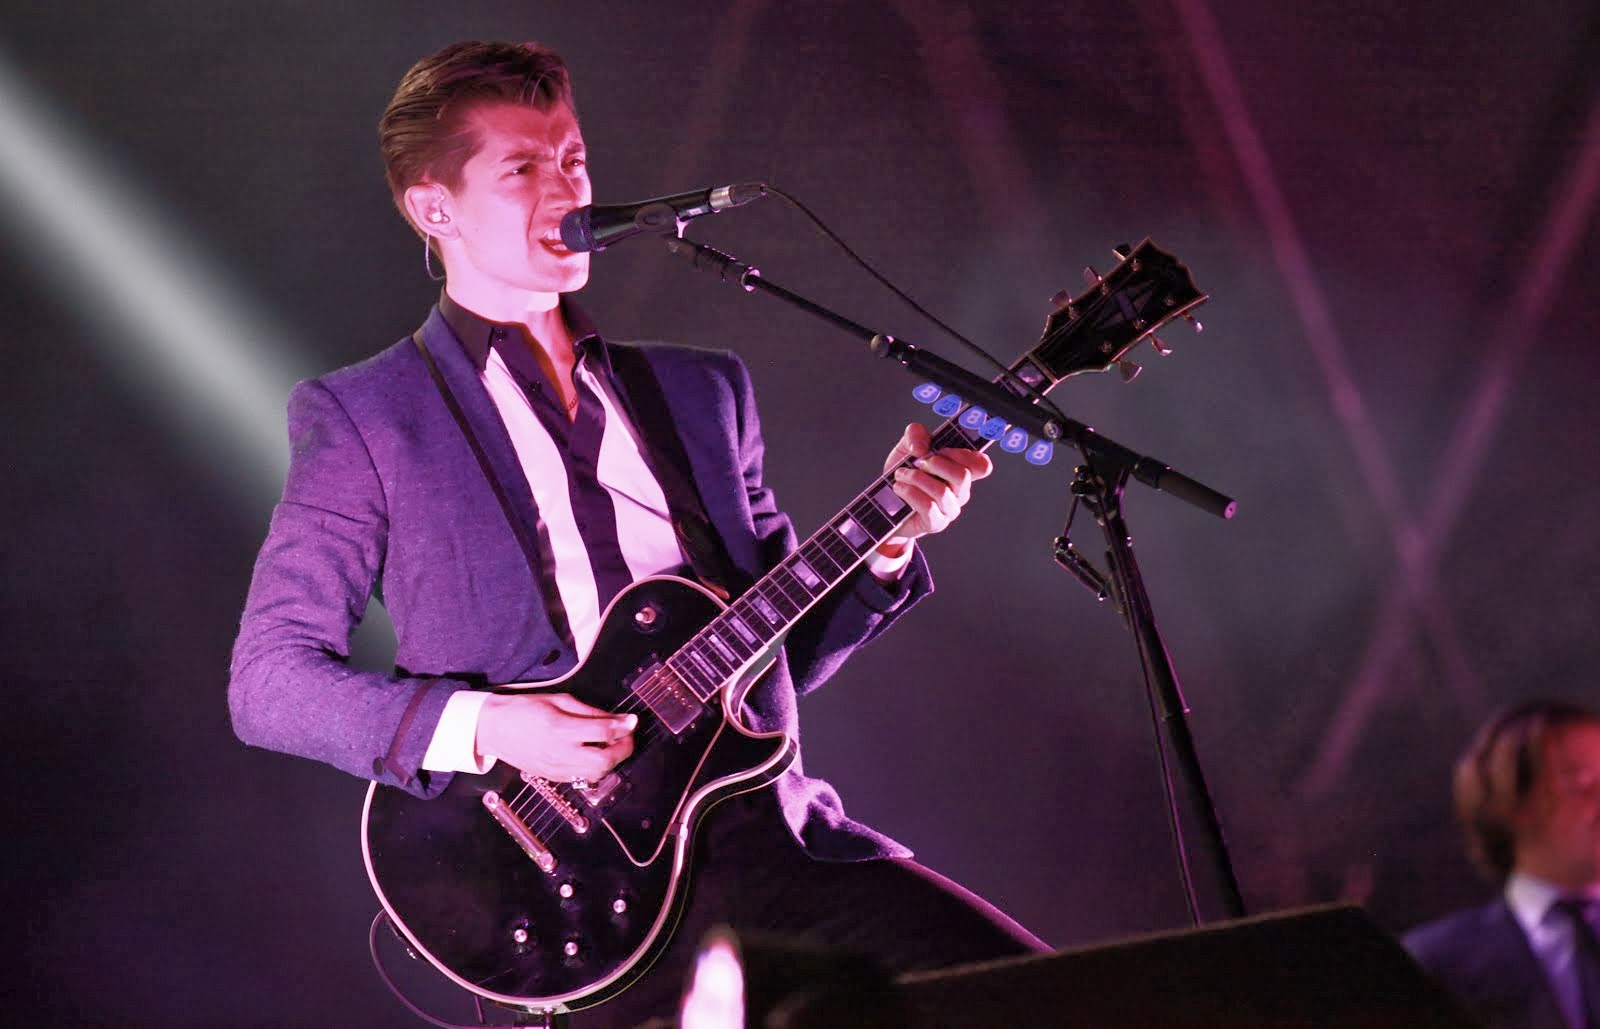 00O00 Menswear Blog: Alex Turner in Saint Laurent Stagewear -  The Electric Picnic festival, Dublin